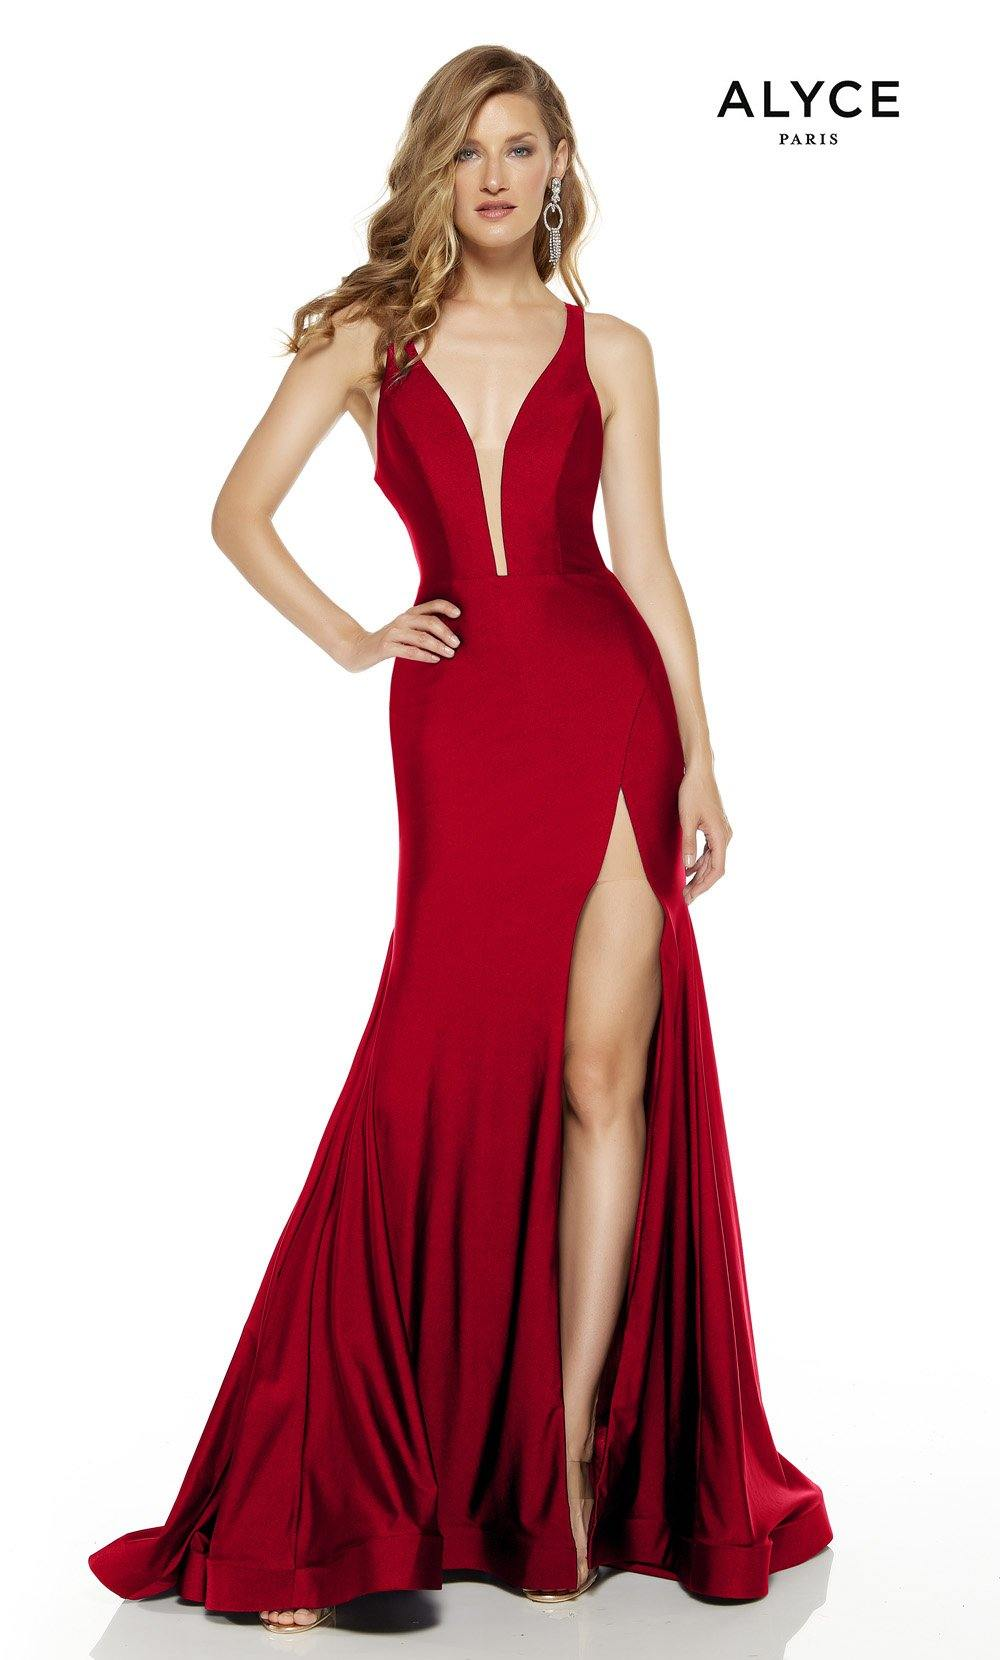 Red prom dress with a plunging neckline and a slit